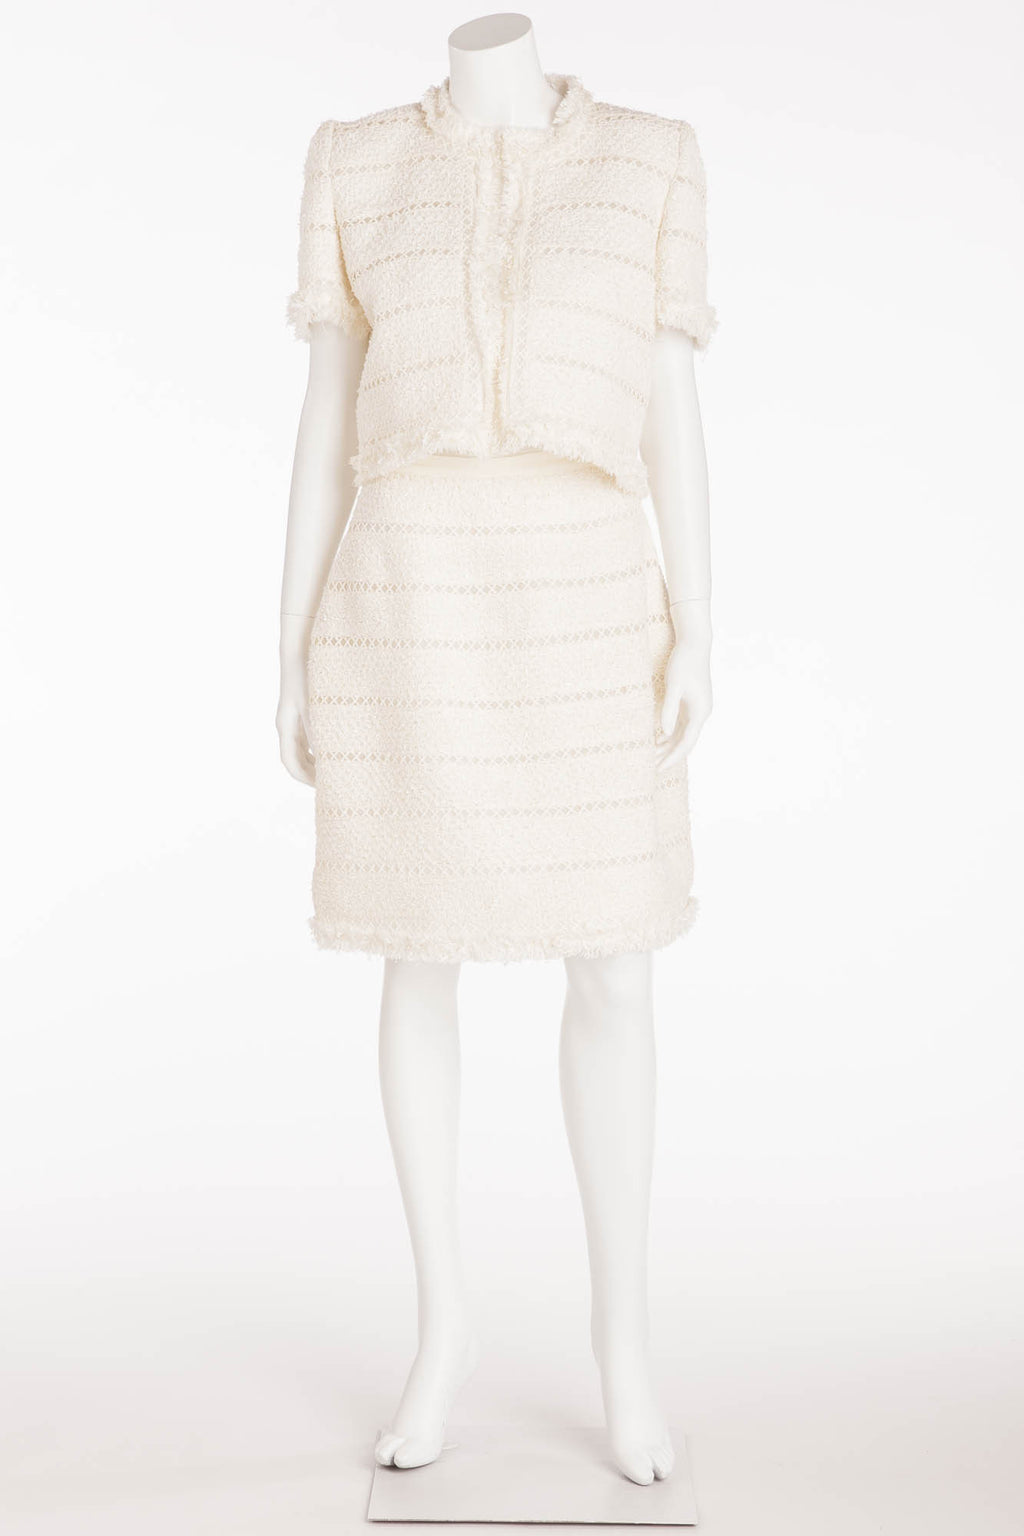 Oscar De La Renta - 2PC White Short Sleeve Top and Skirt - 8